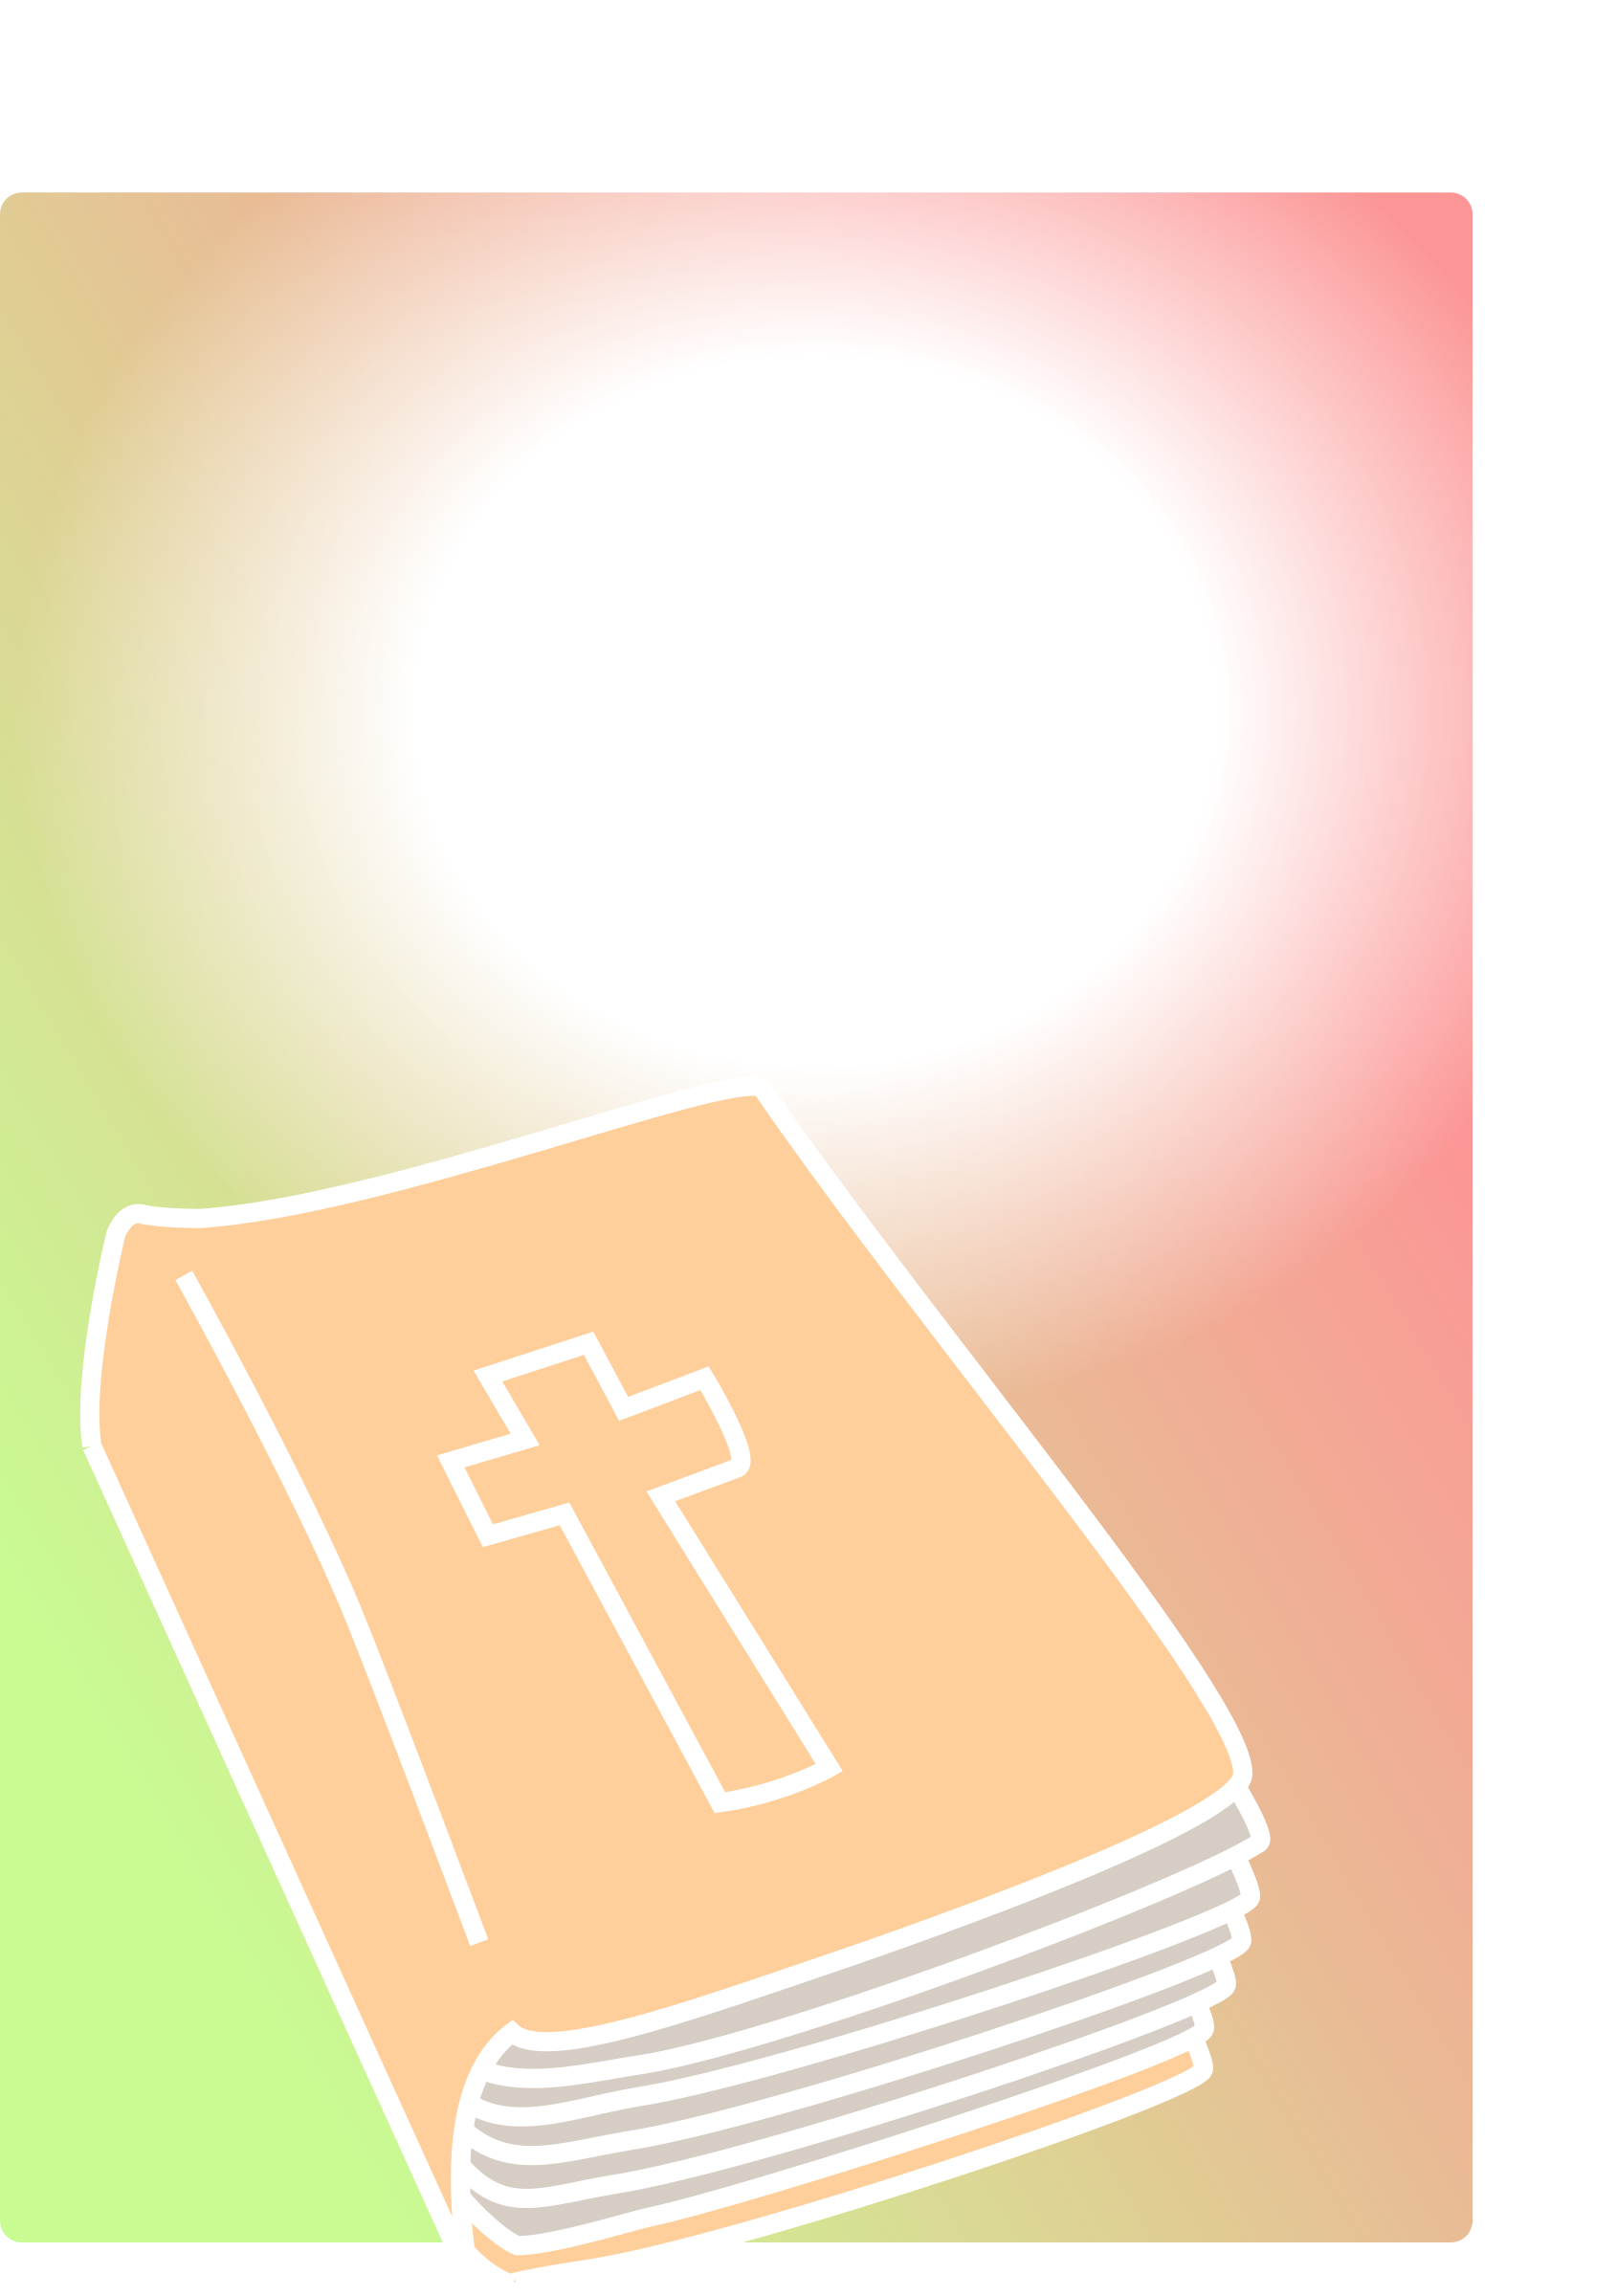 bible by roland81